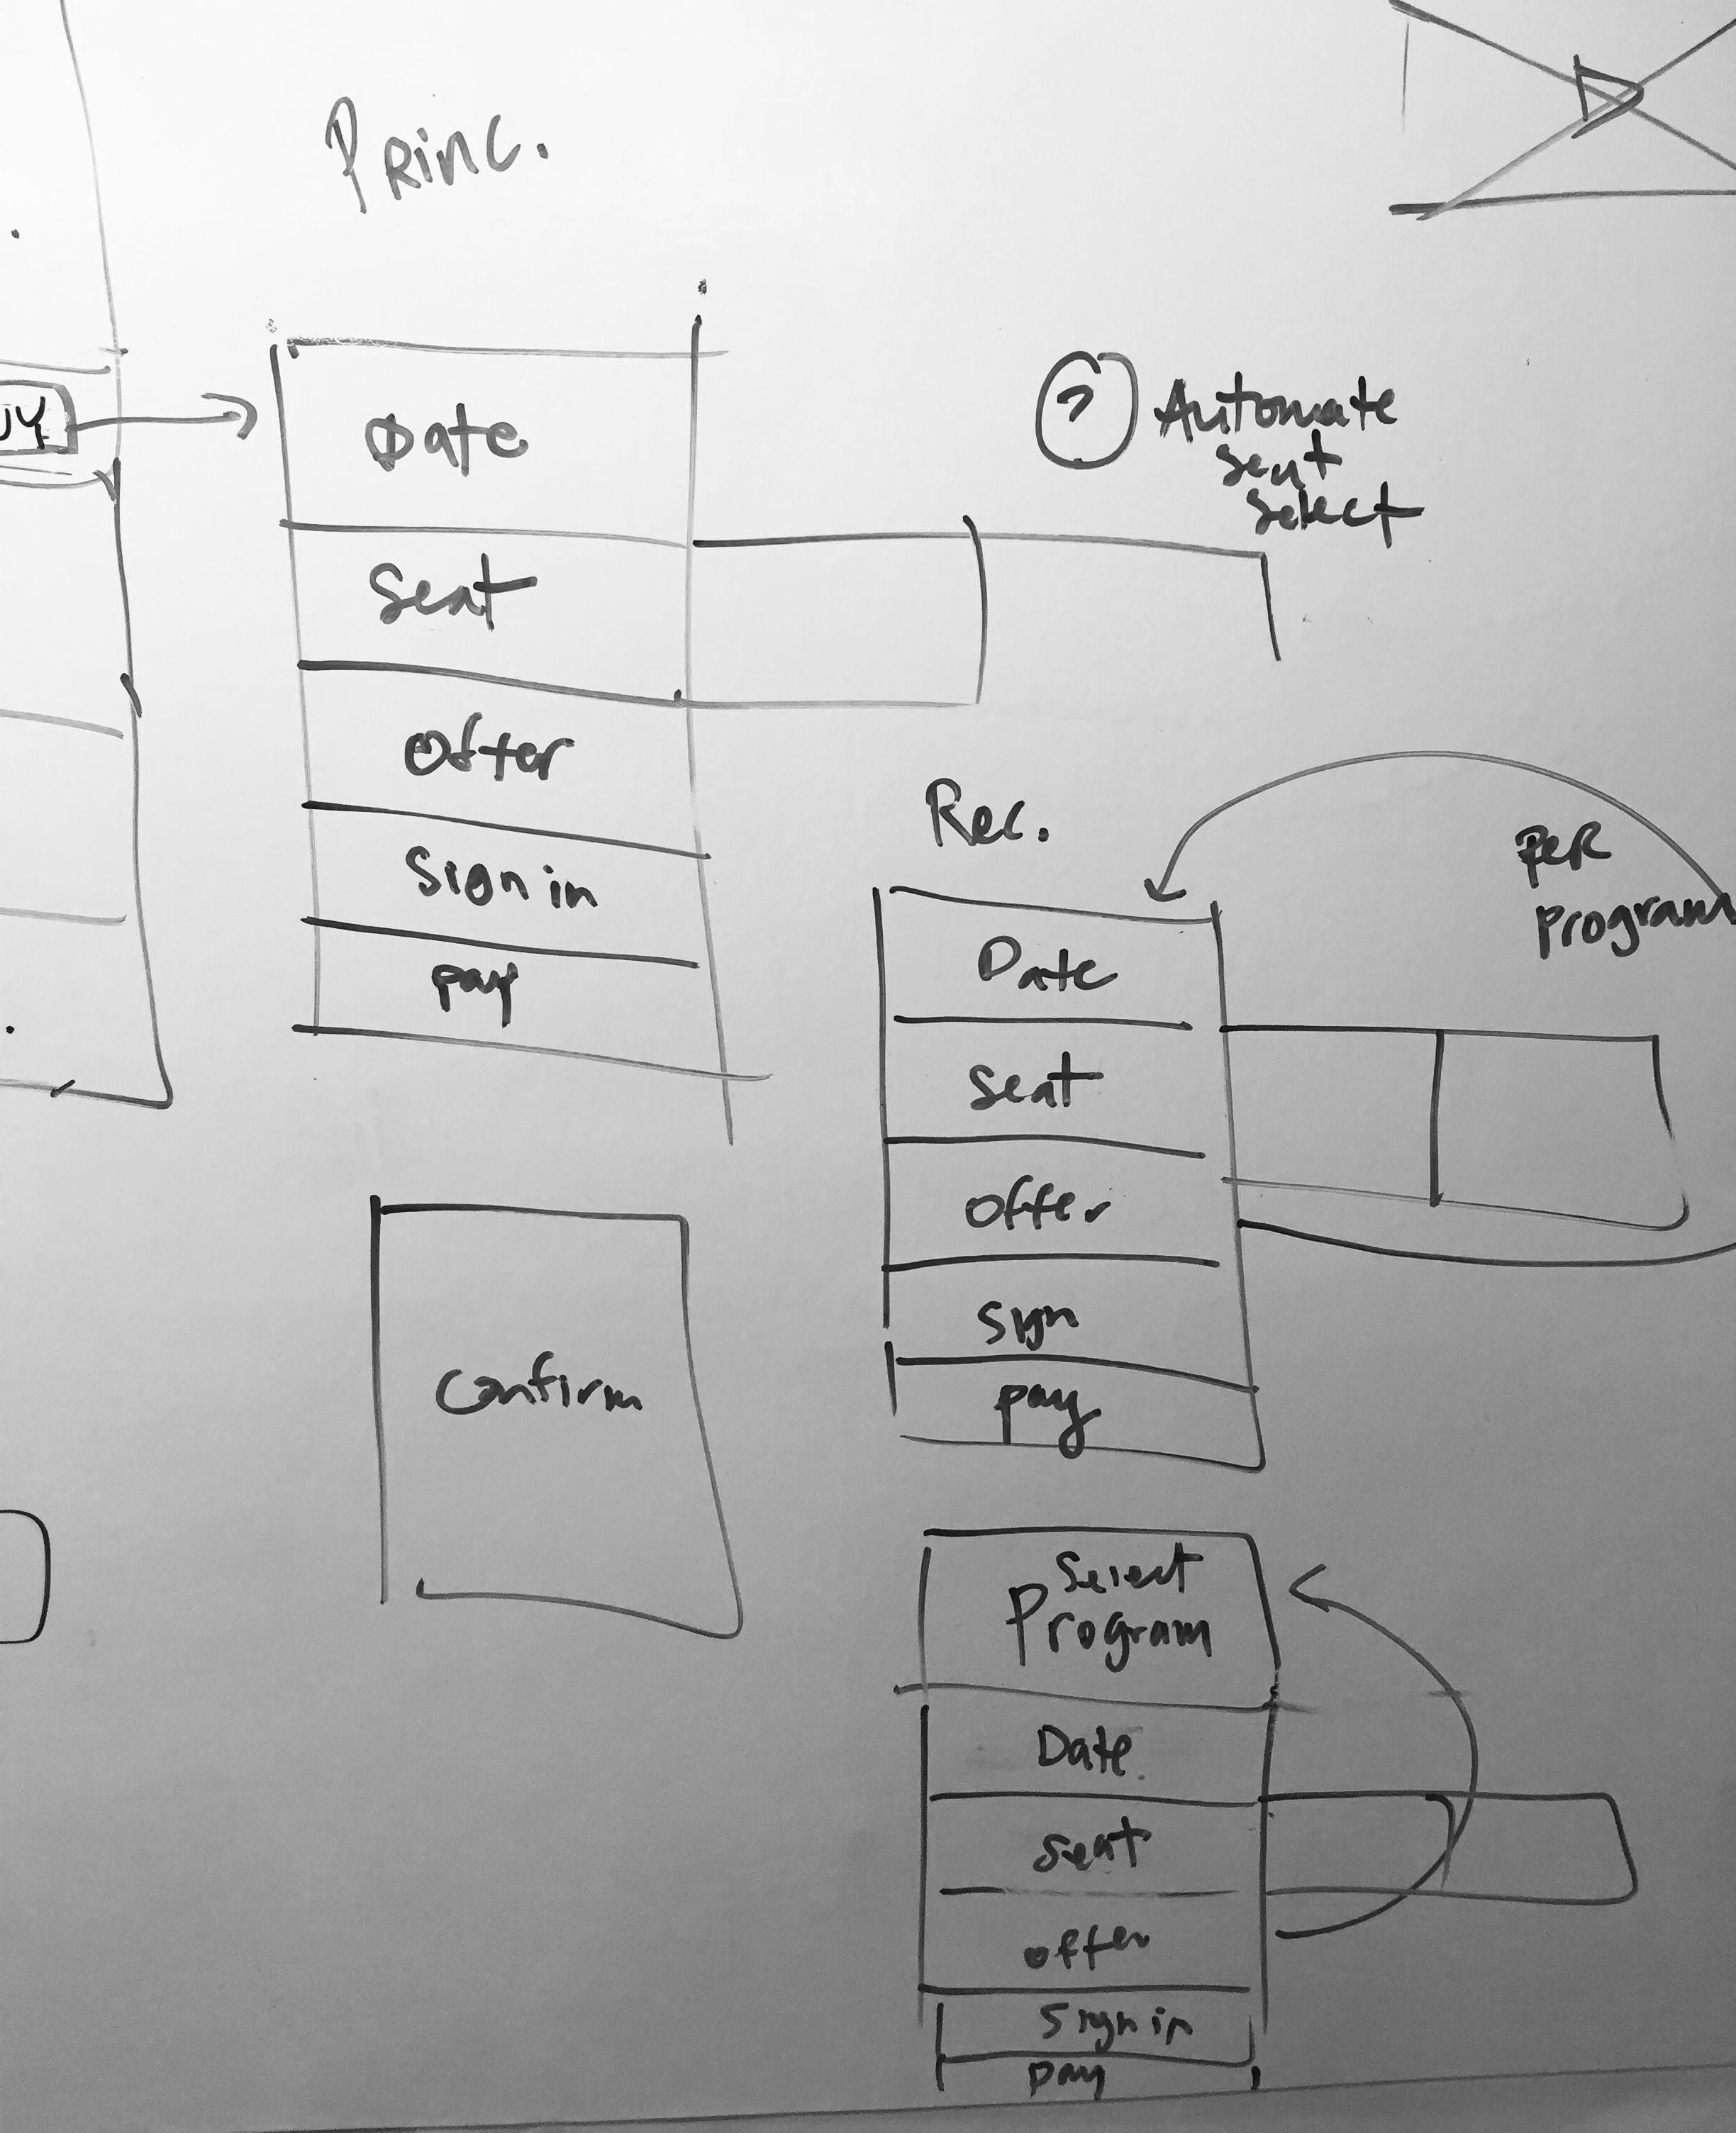 Sketching the various ticket package flows